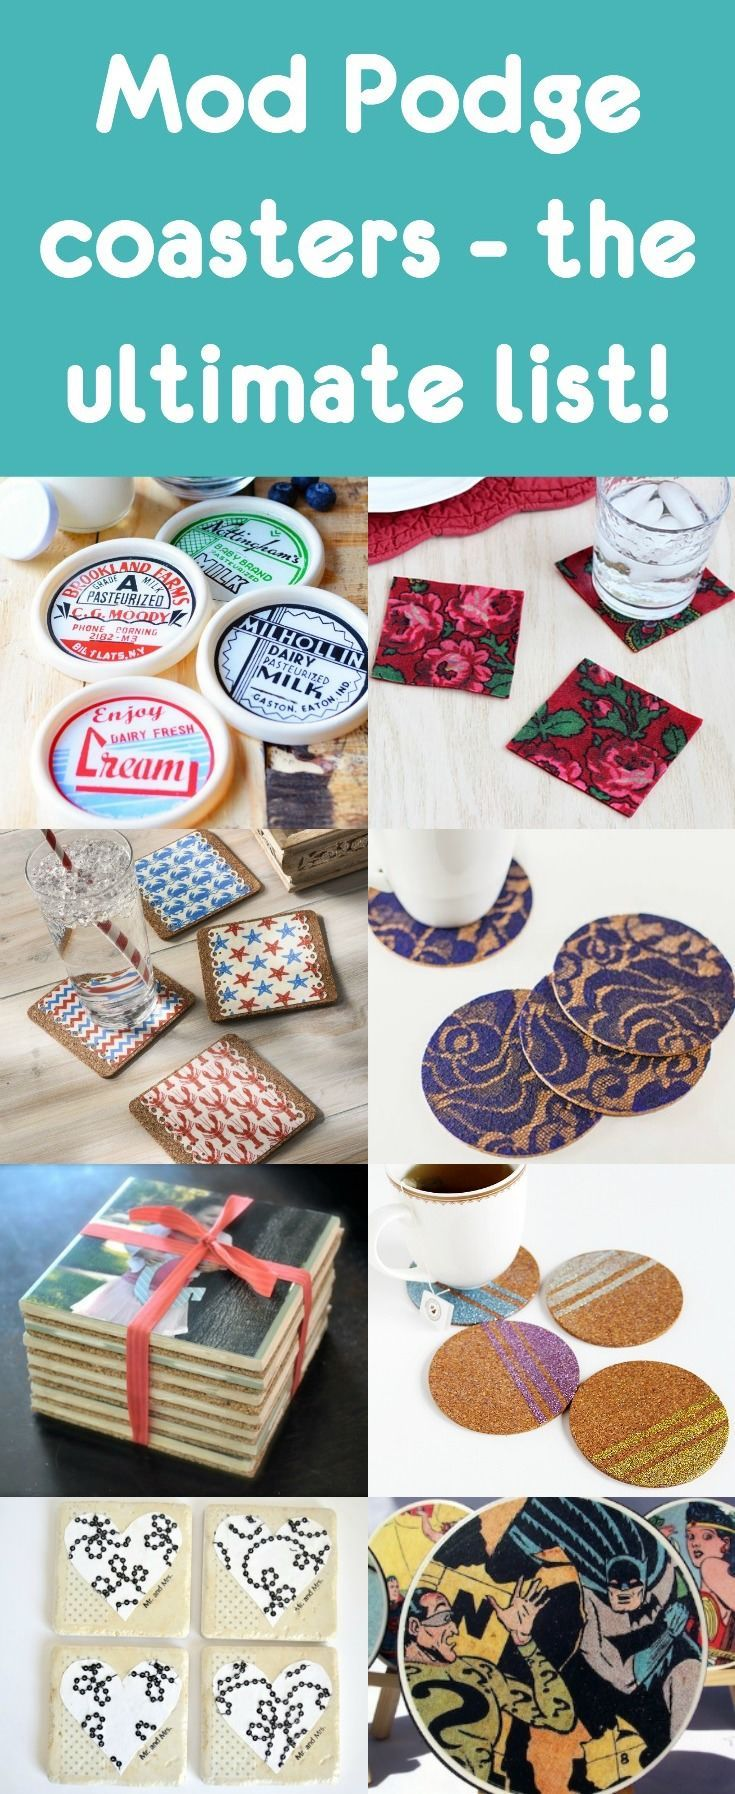 Want to make Mod Podge coasters? This is the ultimate list of ideas! We have all types of tutorials, for all occasions like holidays, DIY gifts, and more. There's something for everyone here!